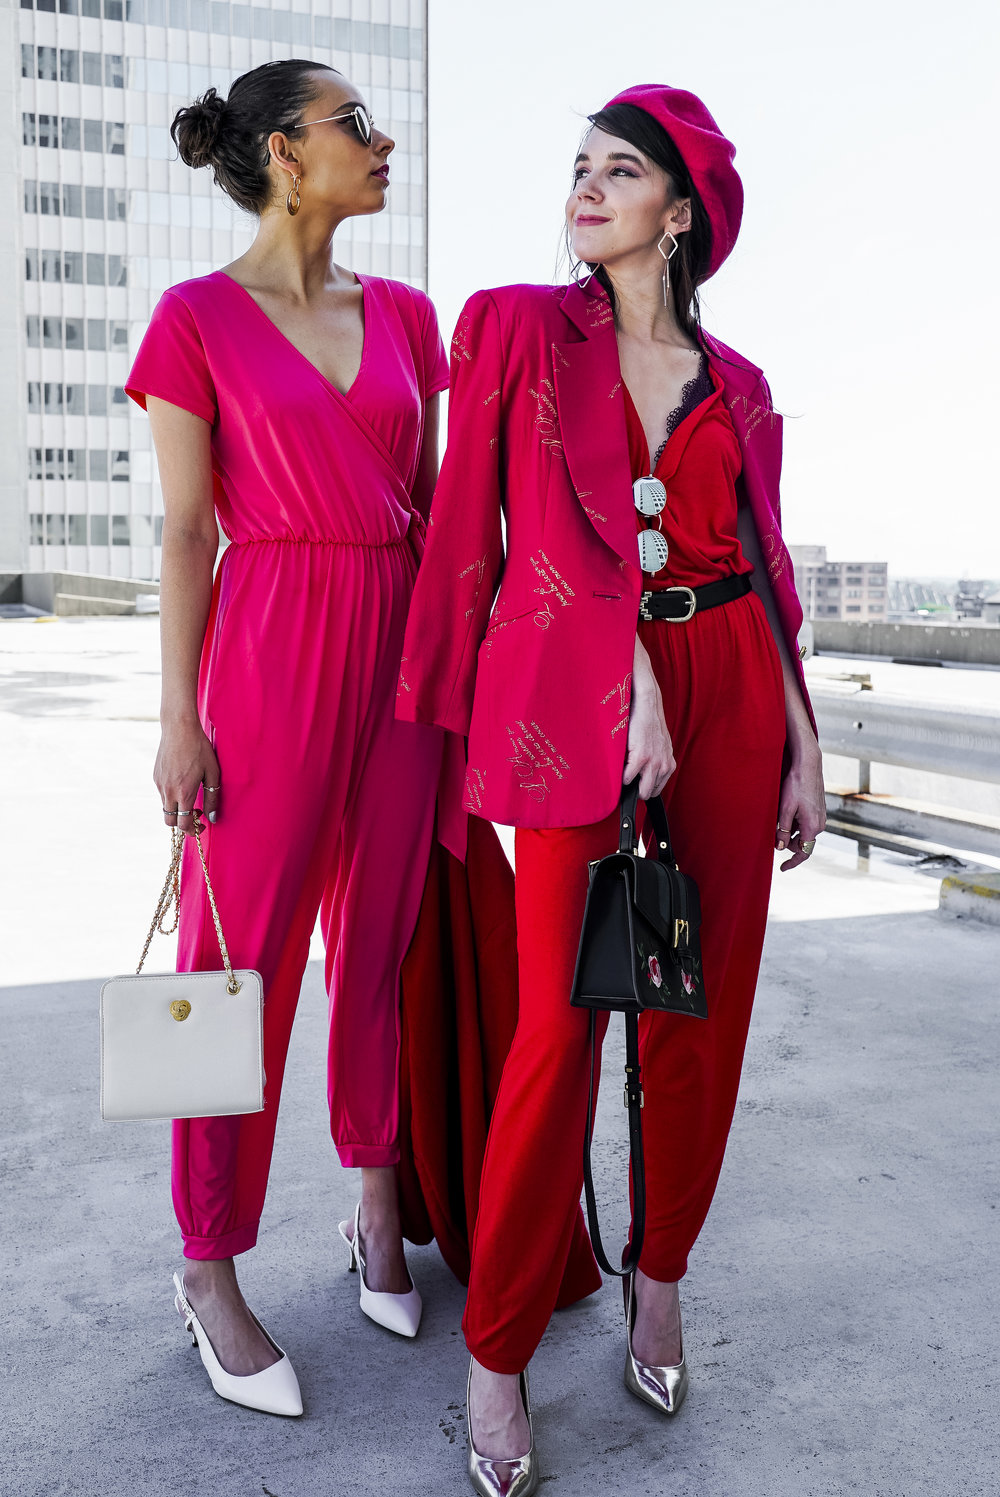 The Life-Changing Power of Personal Style